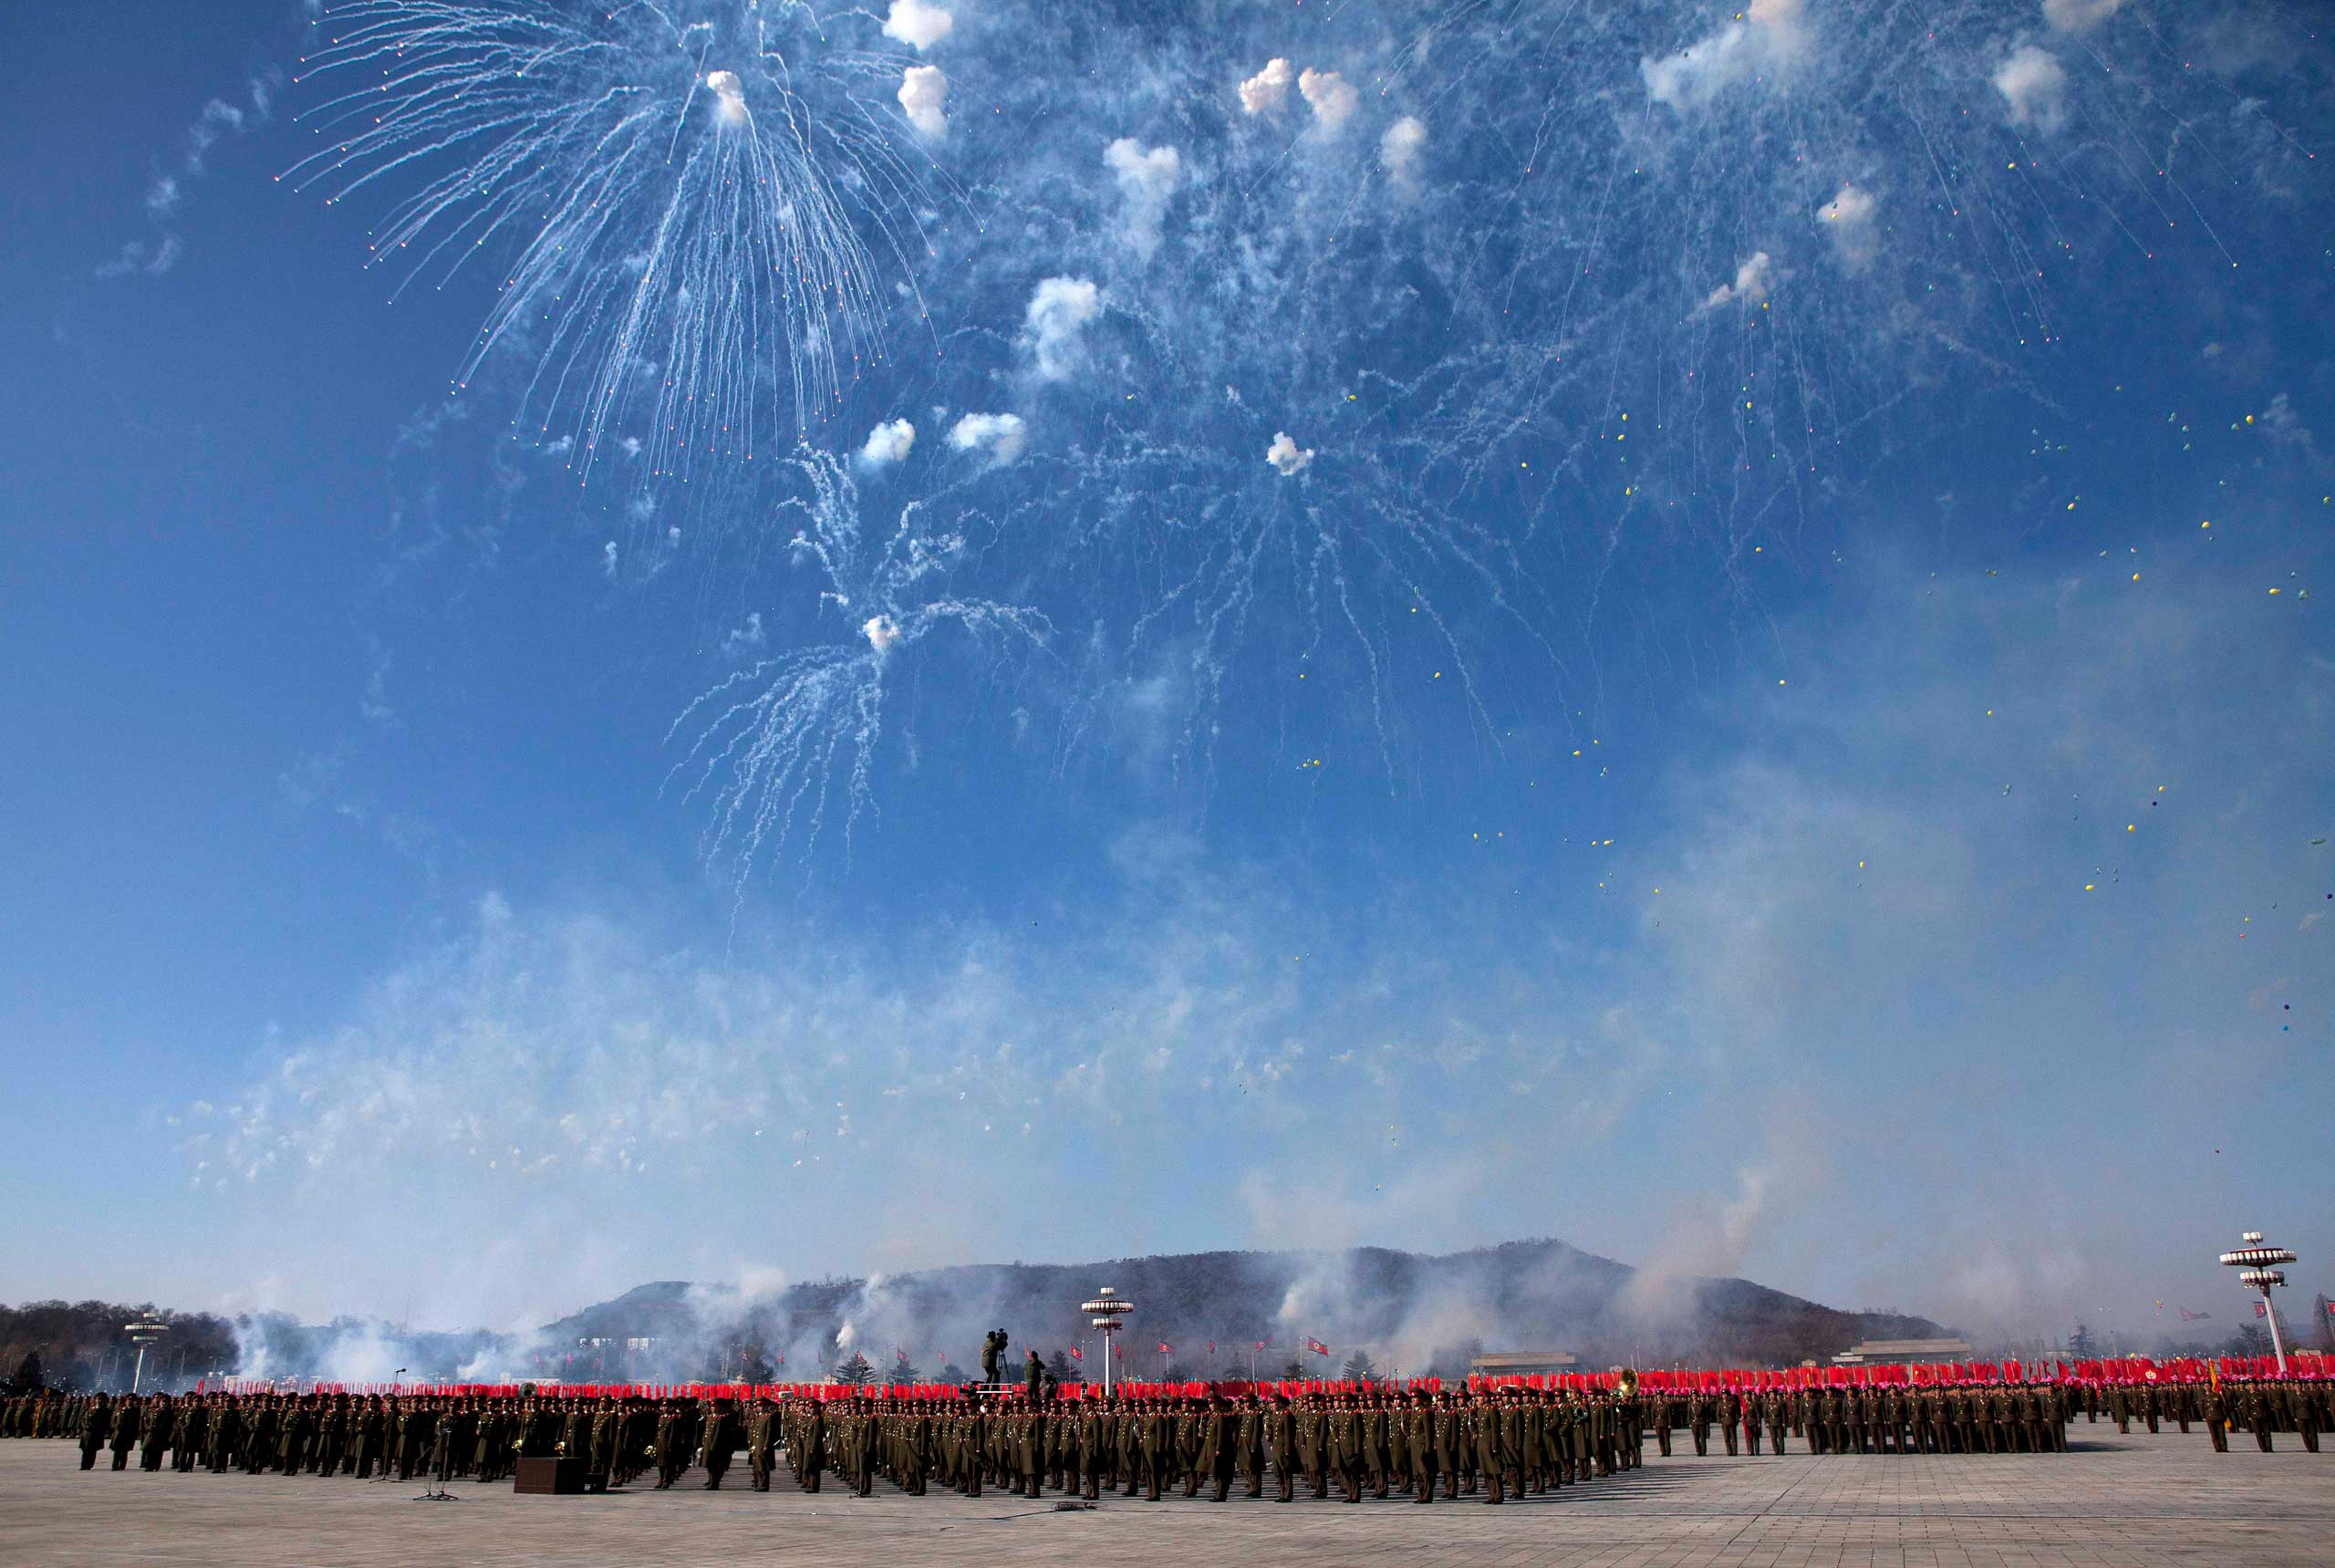 Feb. 16, 2012. Fireworks explode over the heads of North Korean soldiers lined up in formation at Kumsusan Memorial Palace in Pyongyang during a parade of thousands of soldiers commemorating the 70th birthday of the late Kim Jong-Il.